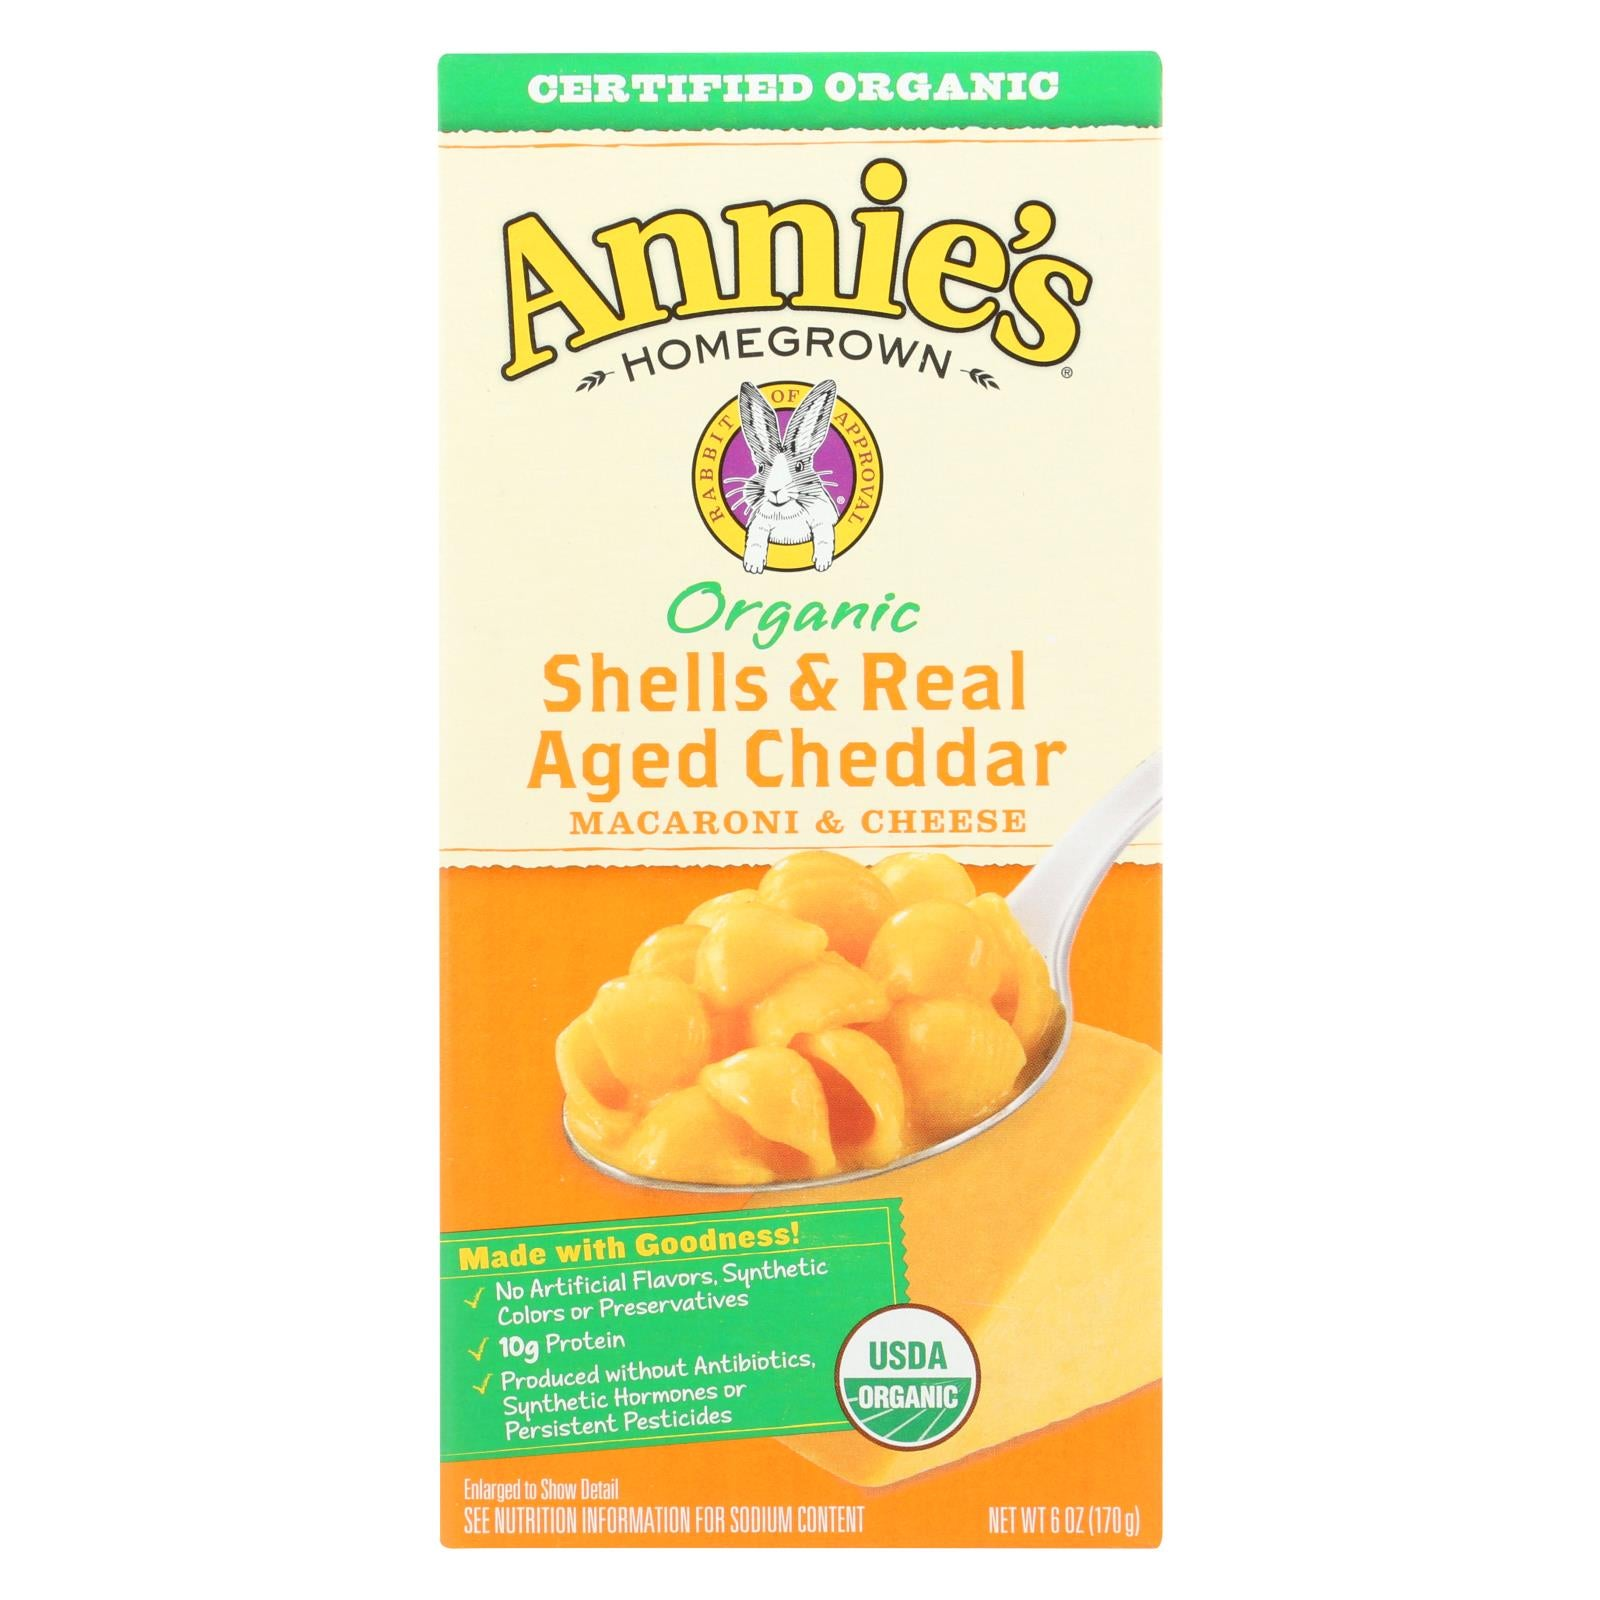 Annie's Homegrown Organic Shells And Real Aged Cheddar Macaroni And Cheese - Case Of 12 - 6 Oz. - J. Rose Global